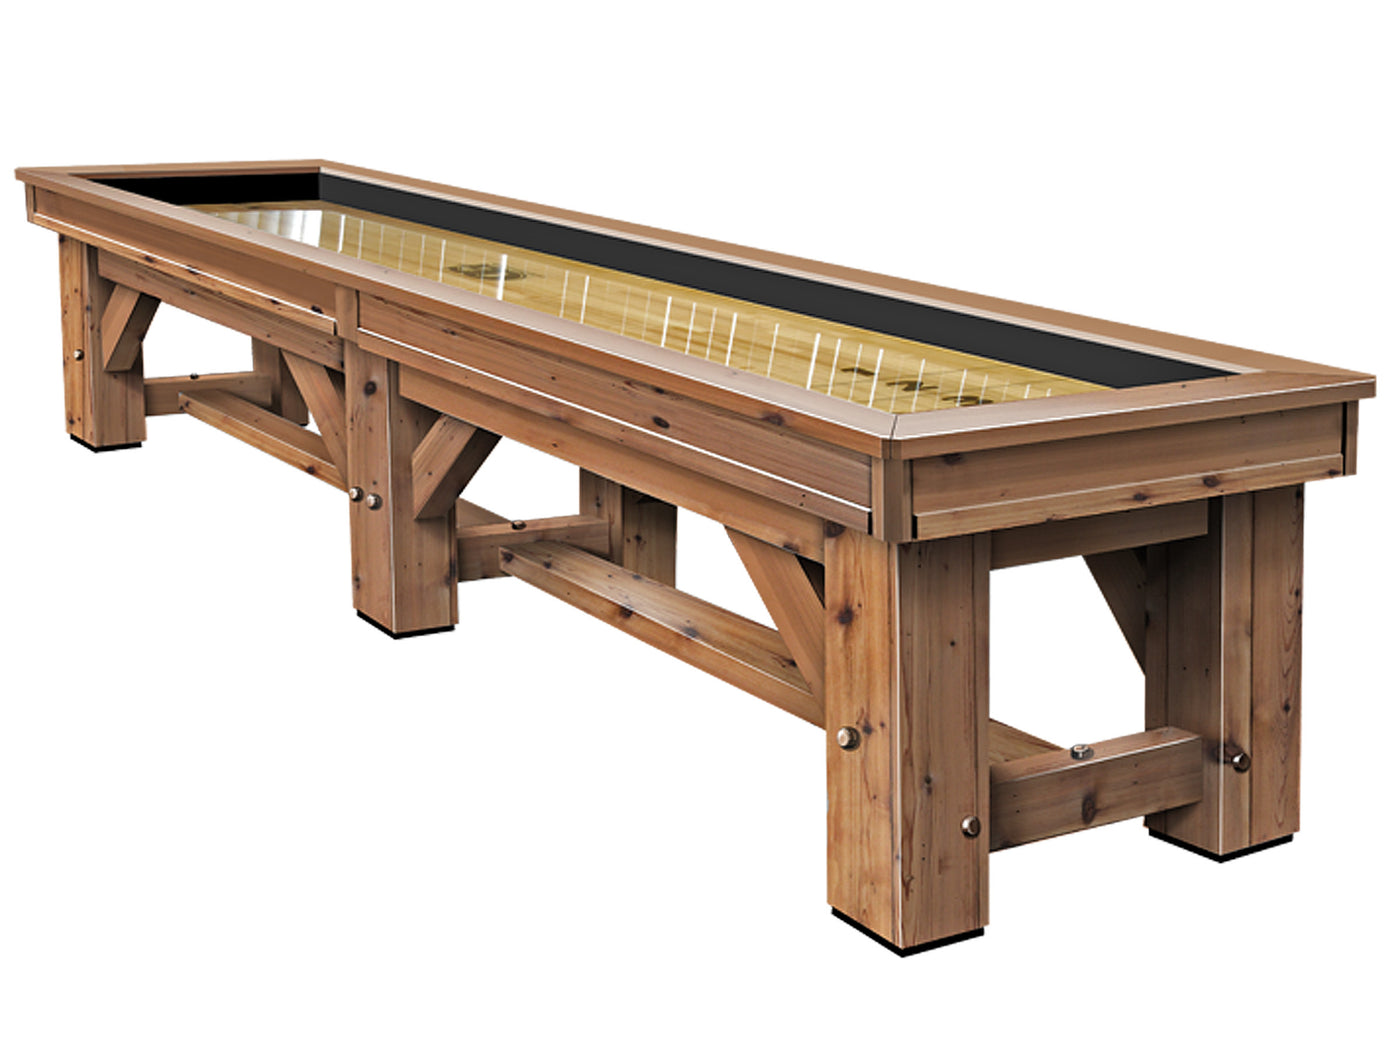 Olhausen Timber Ridge Shuffleboard Table Robbies Billiards